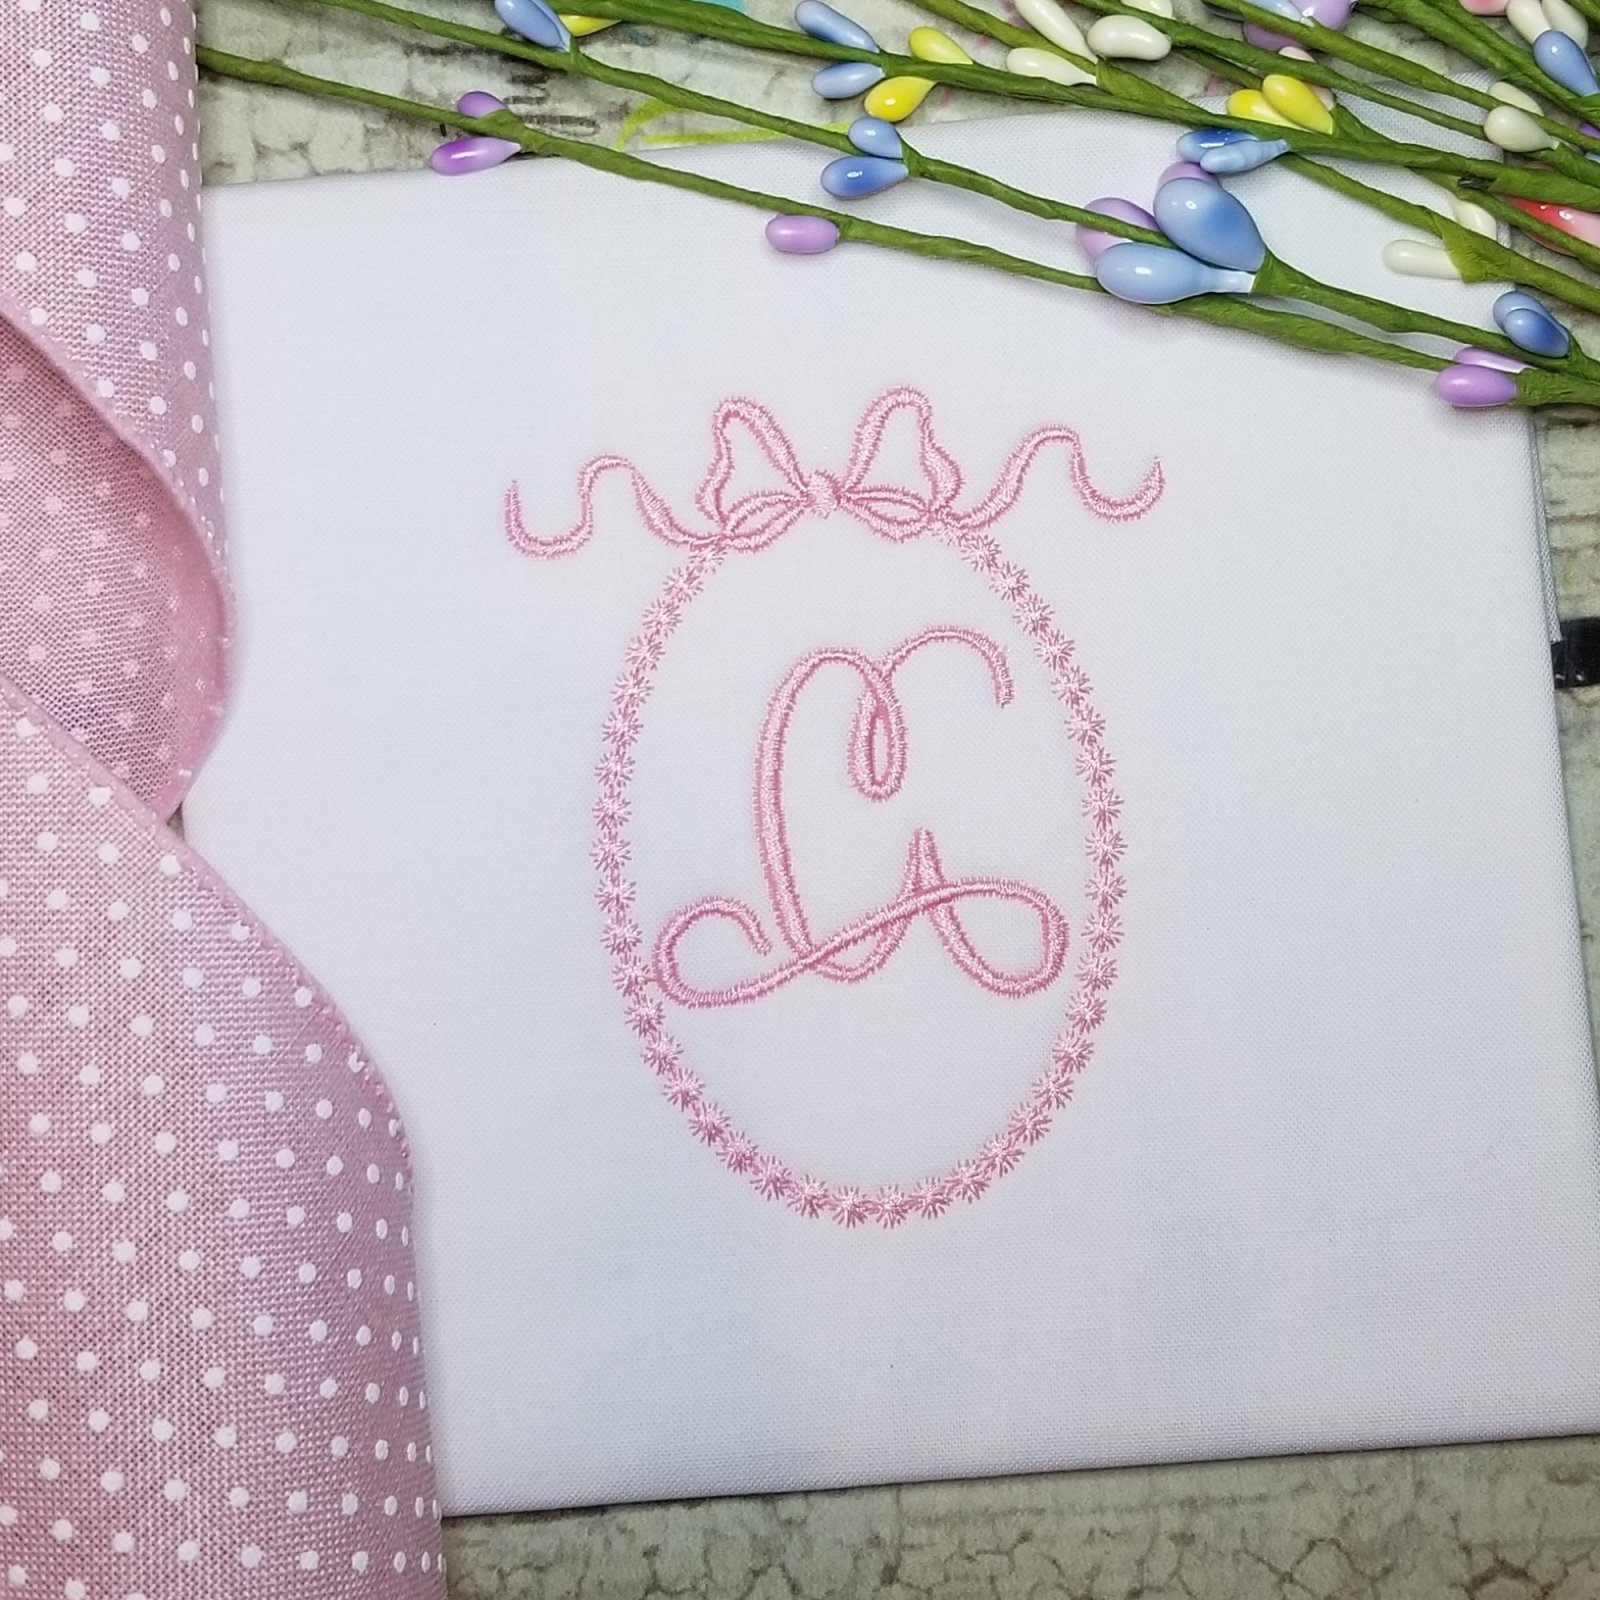 Vintage Monogram Frame with Bow Embroidery Design